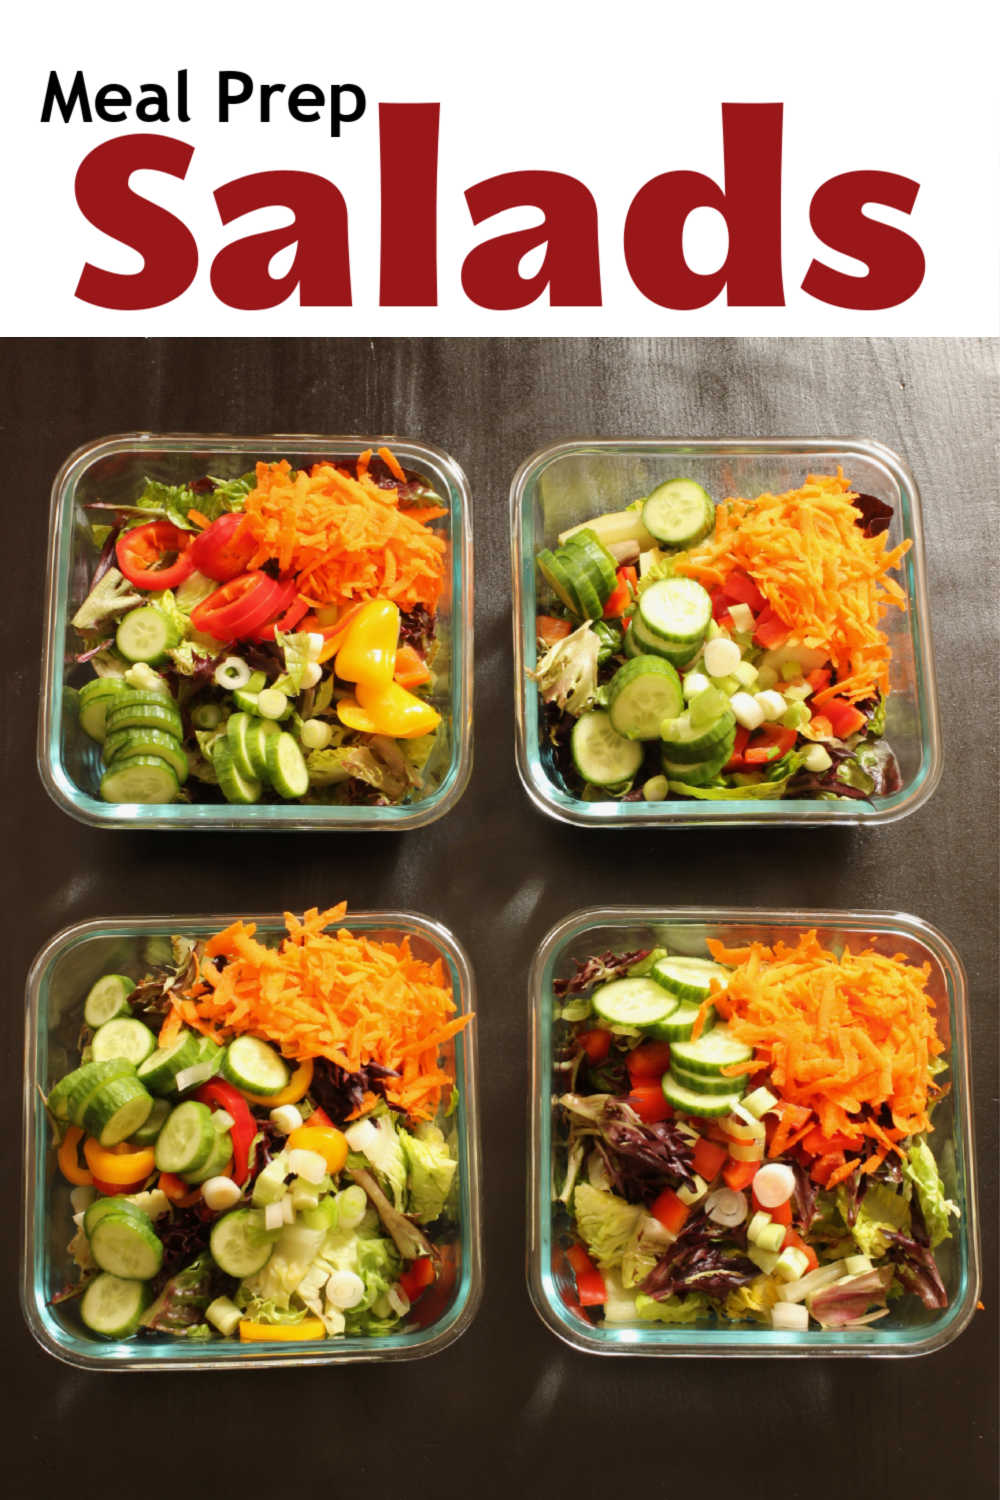 array of meal prep salads on table